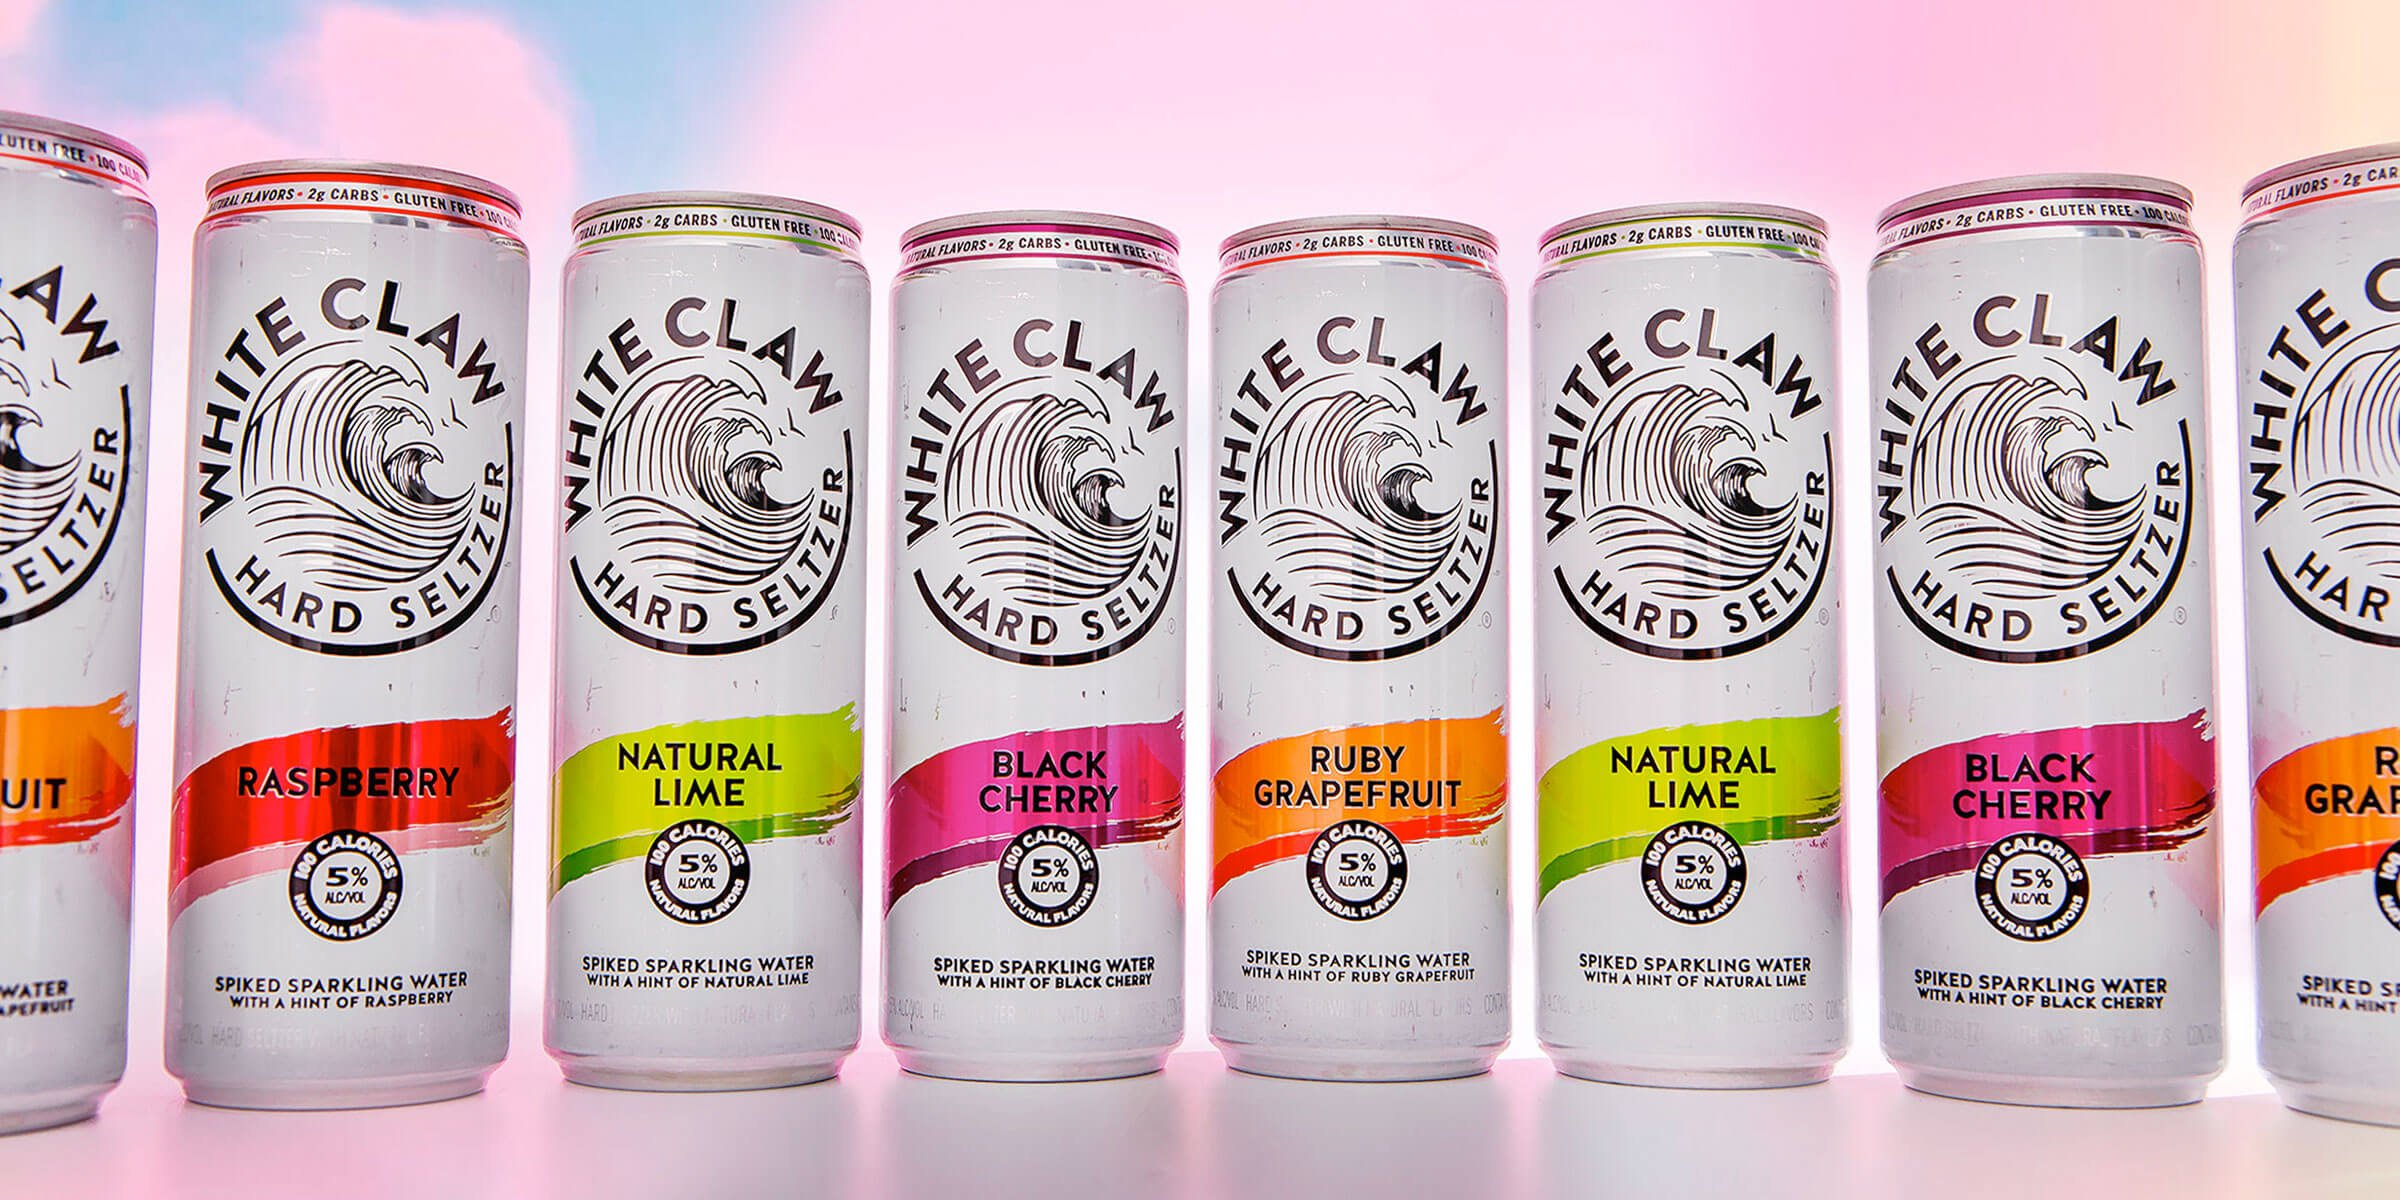 Lineup of White Claw Hard Seltzer canned ready-to-drink beverages by the Mark Anthony Group of Companies